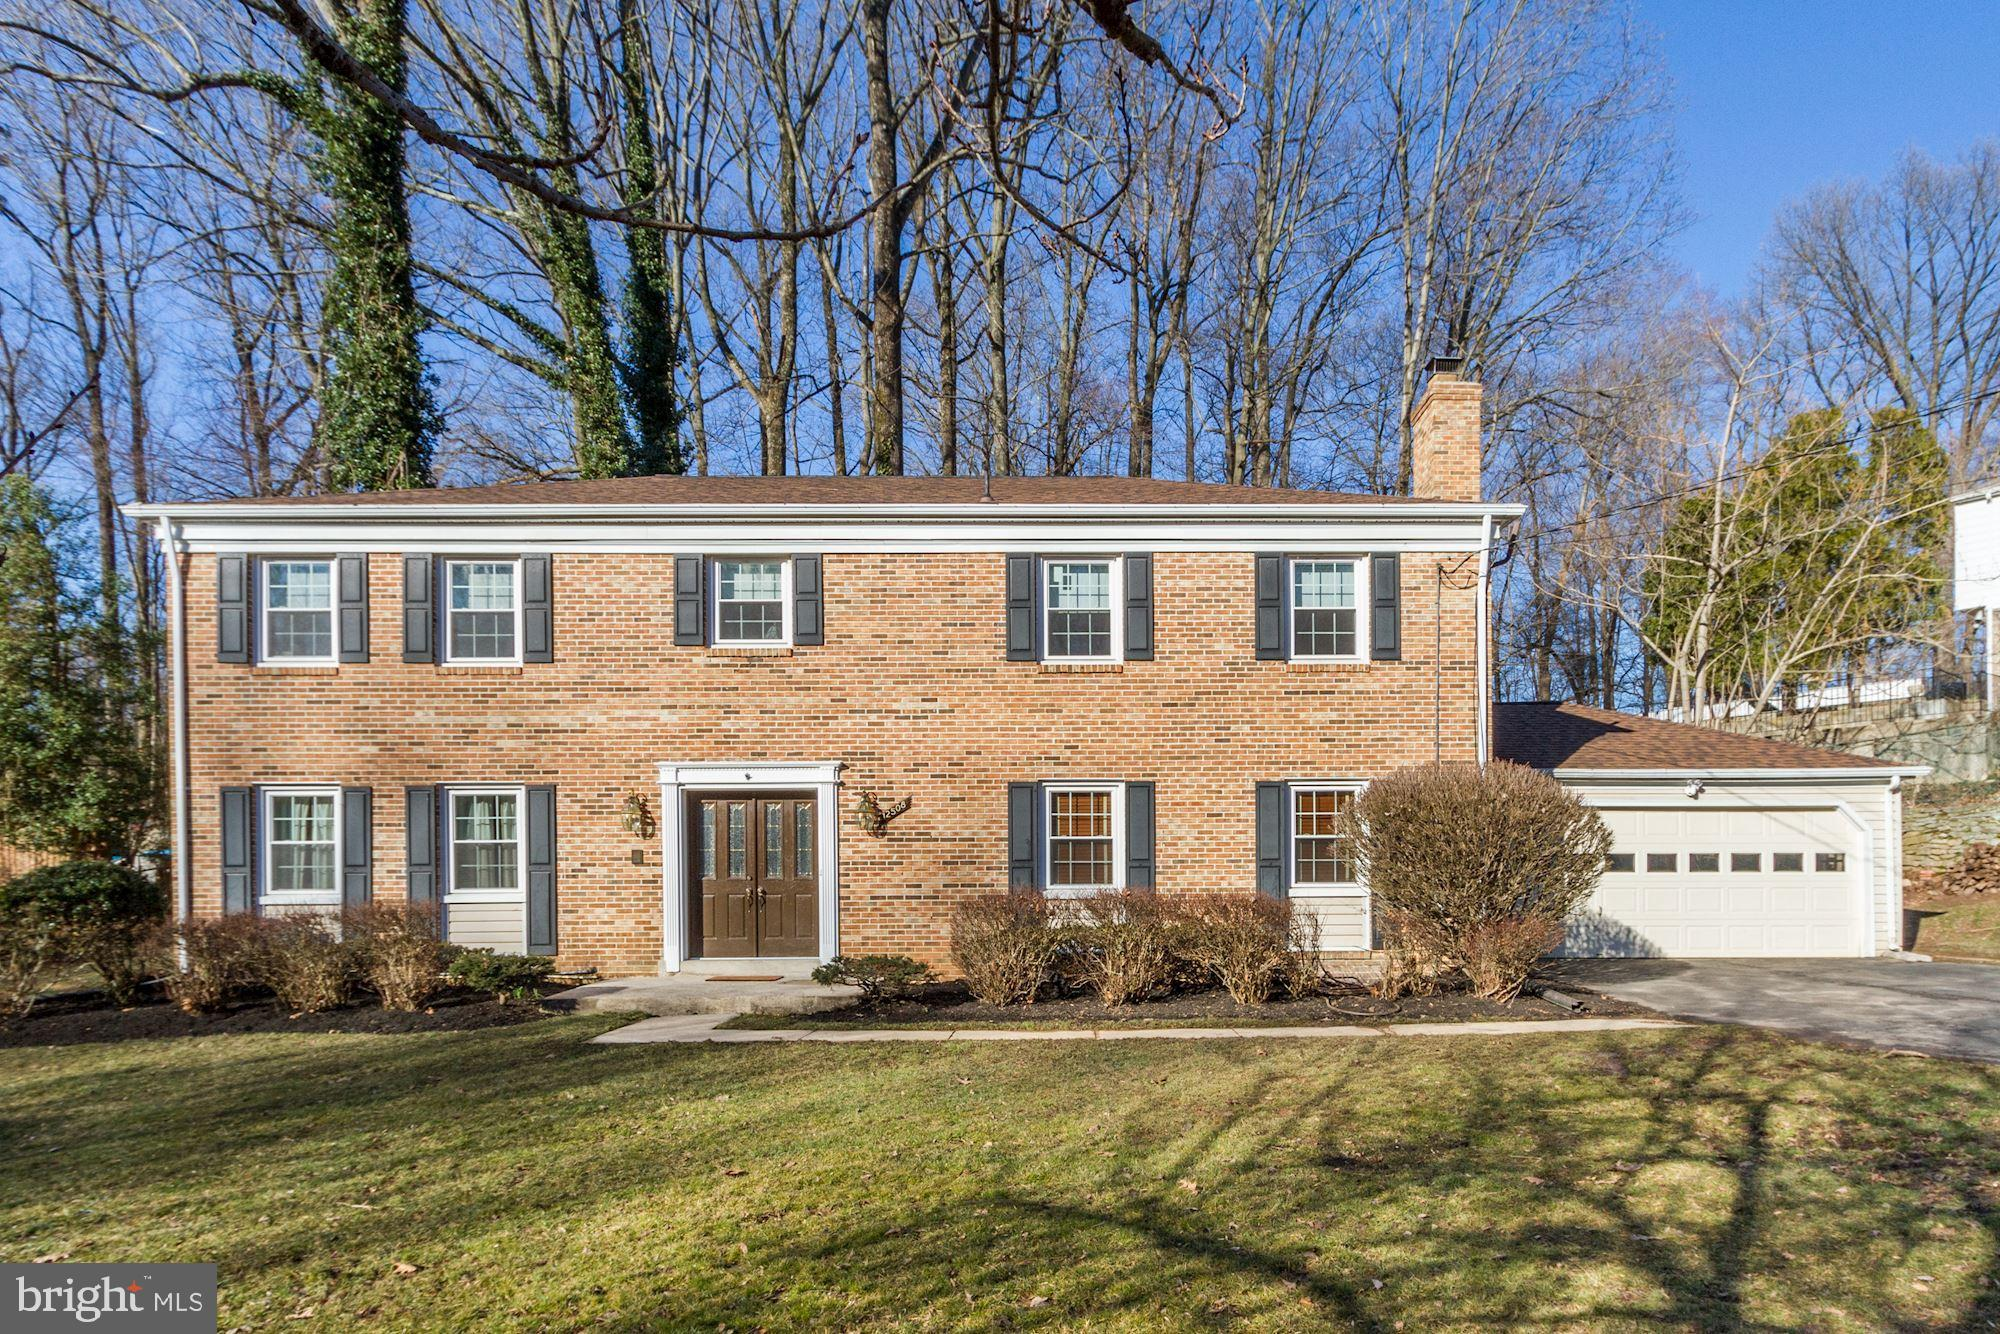 12508 WHITE DRIVE, SILVER SPRING, MD 20904